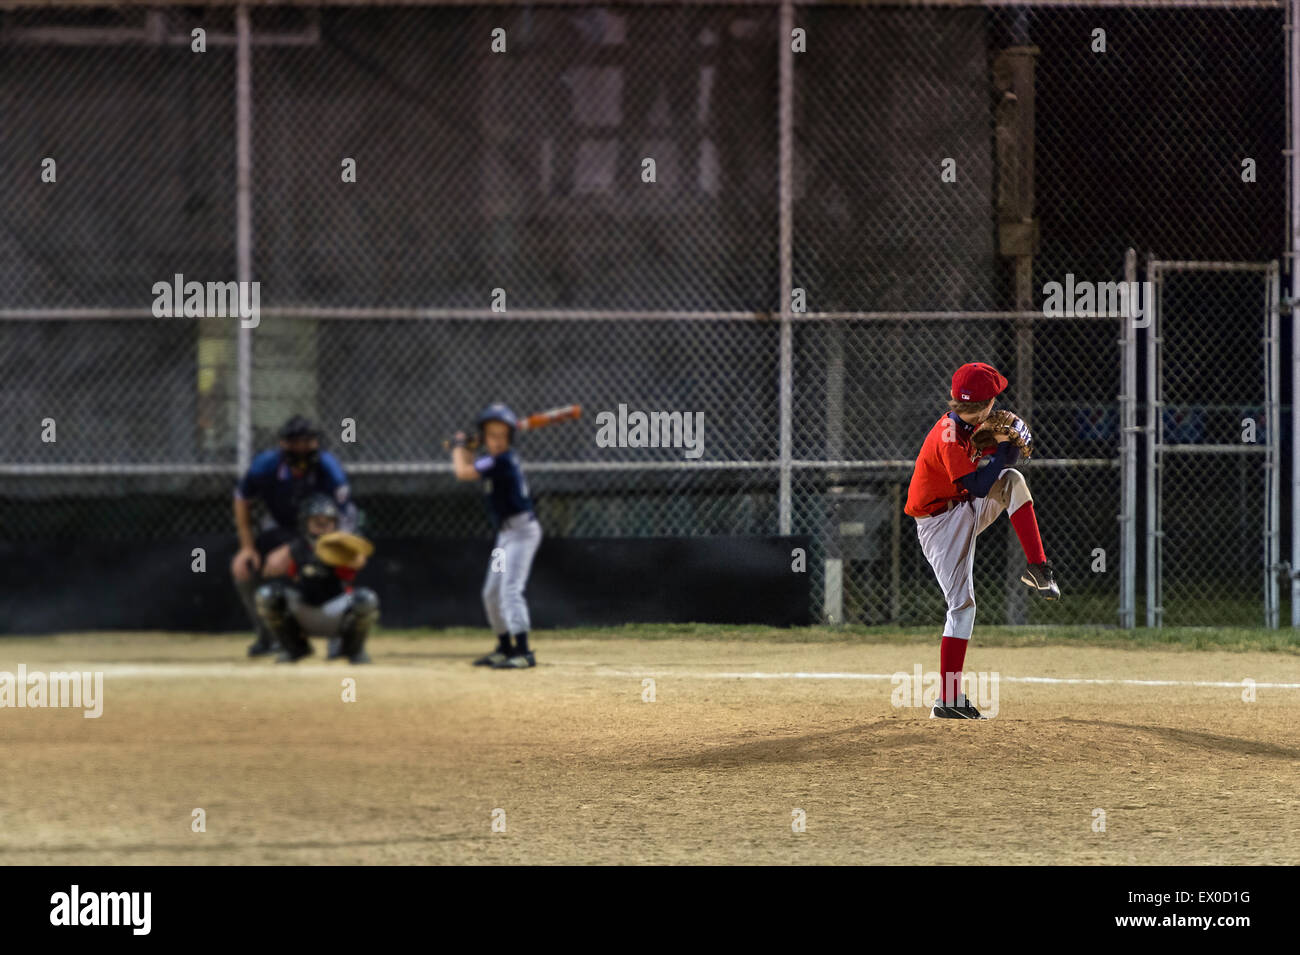 Little League baseball game at night, Delaware, USA - Stock Image